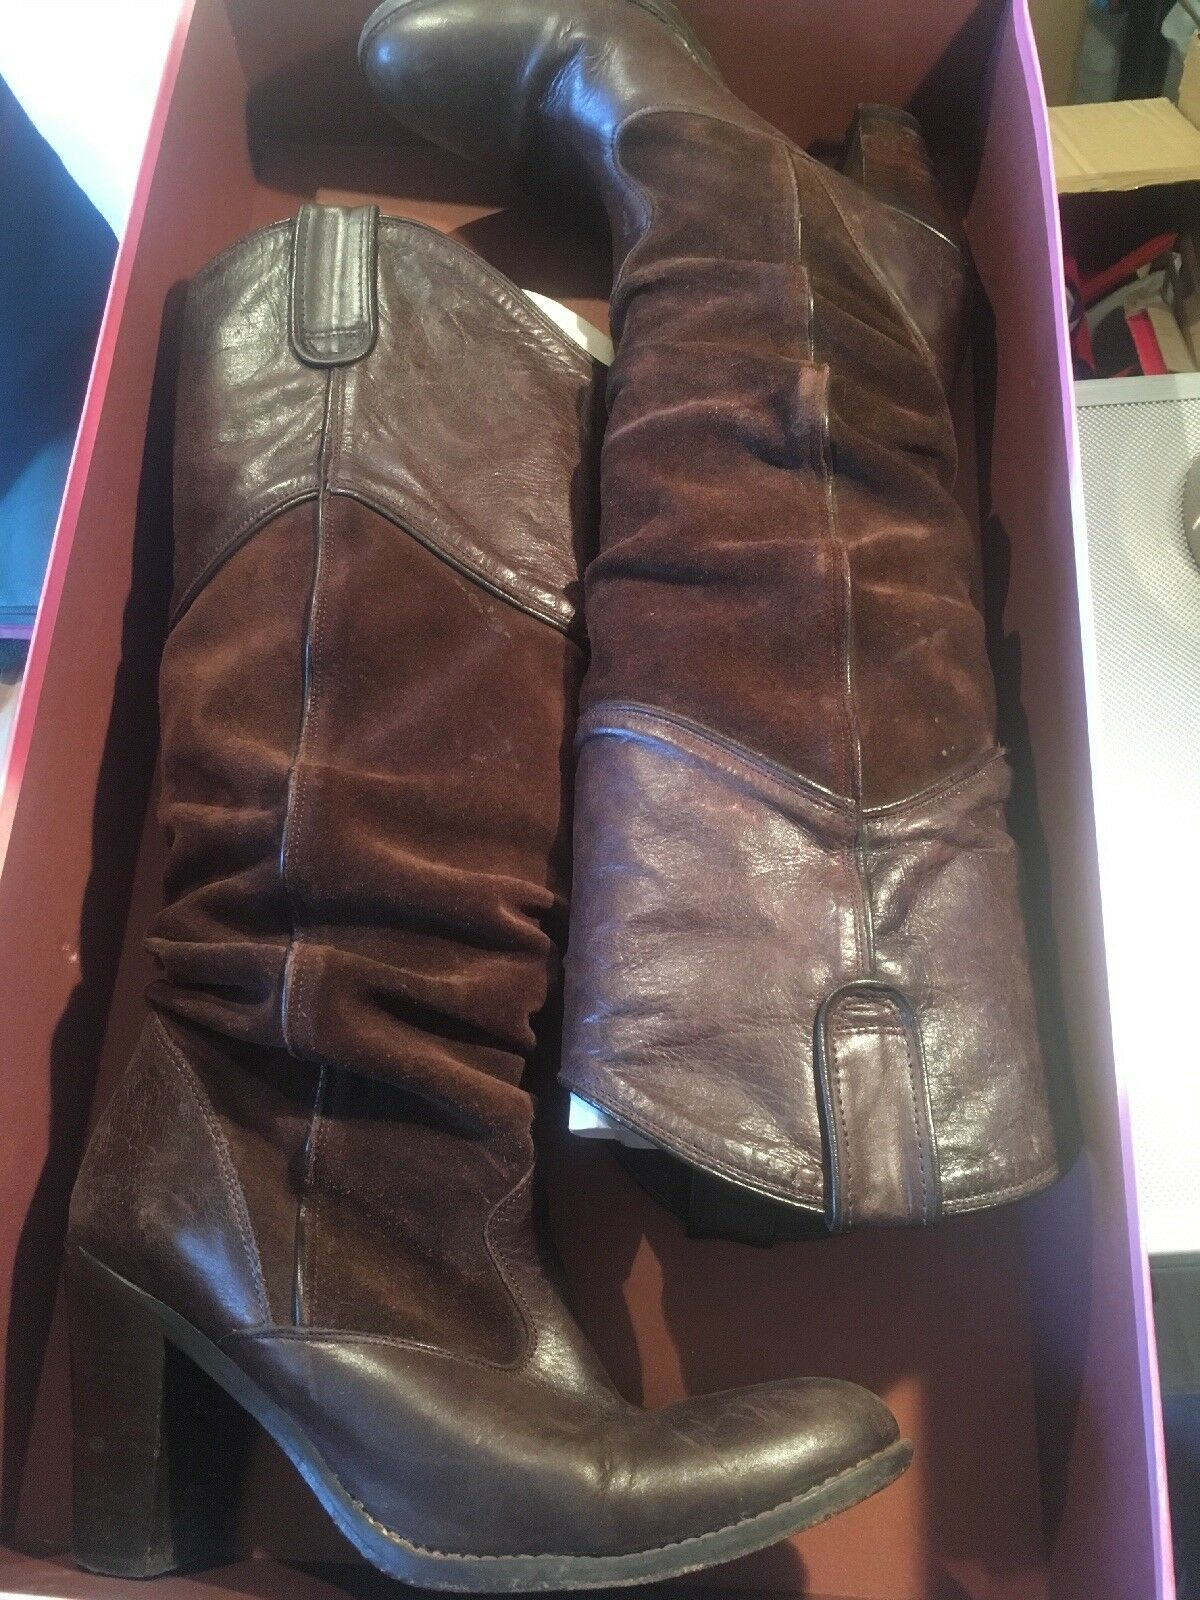 Jigsaw Suede & Leather Brown Boots - Size 38 - Long Length Boot